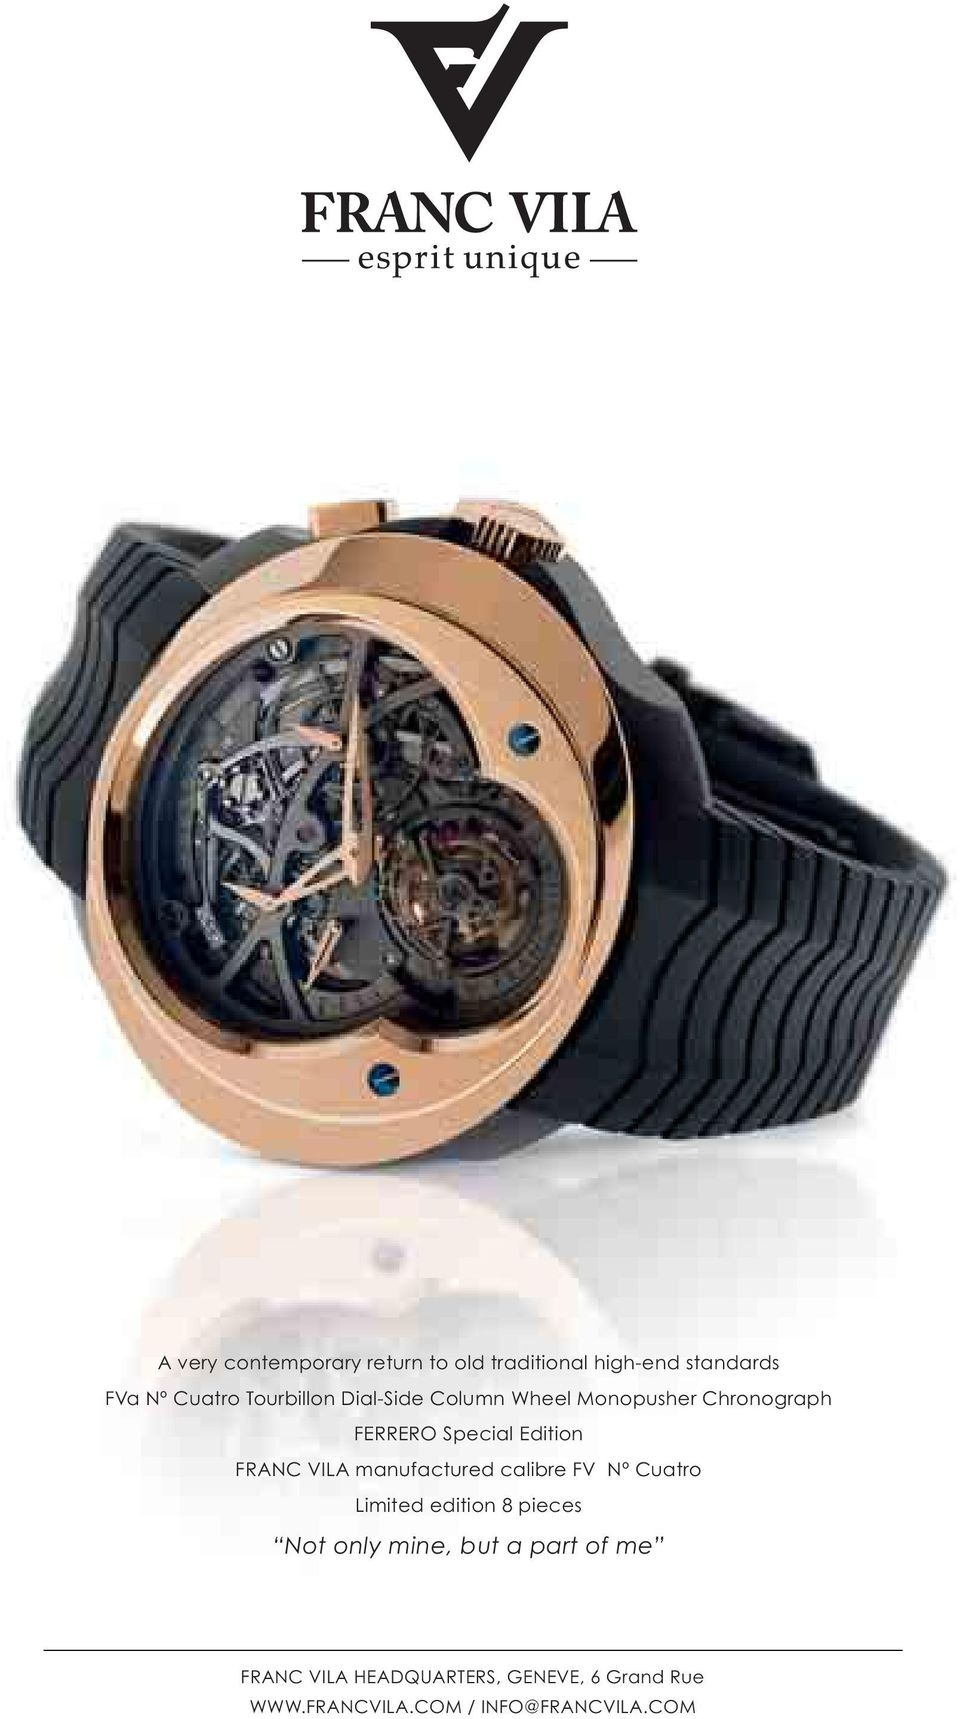 VILA manufactured calibre FV Nº Cuatro Limited edition 8 pieces Not only mine, but a